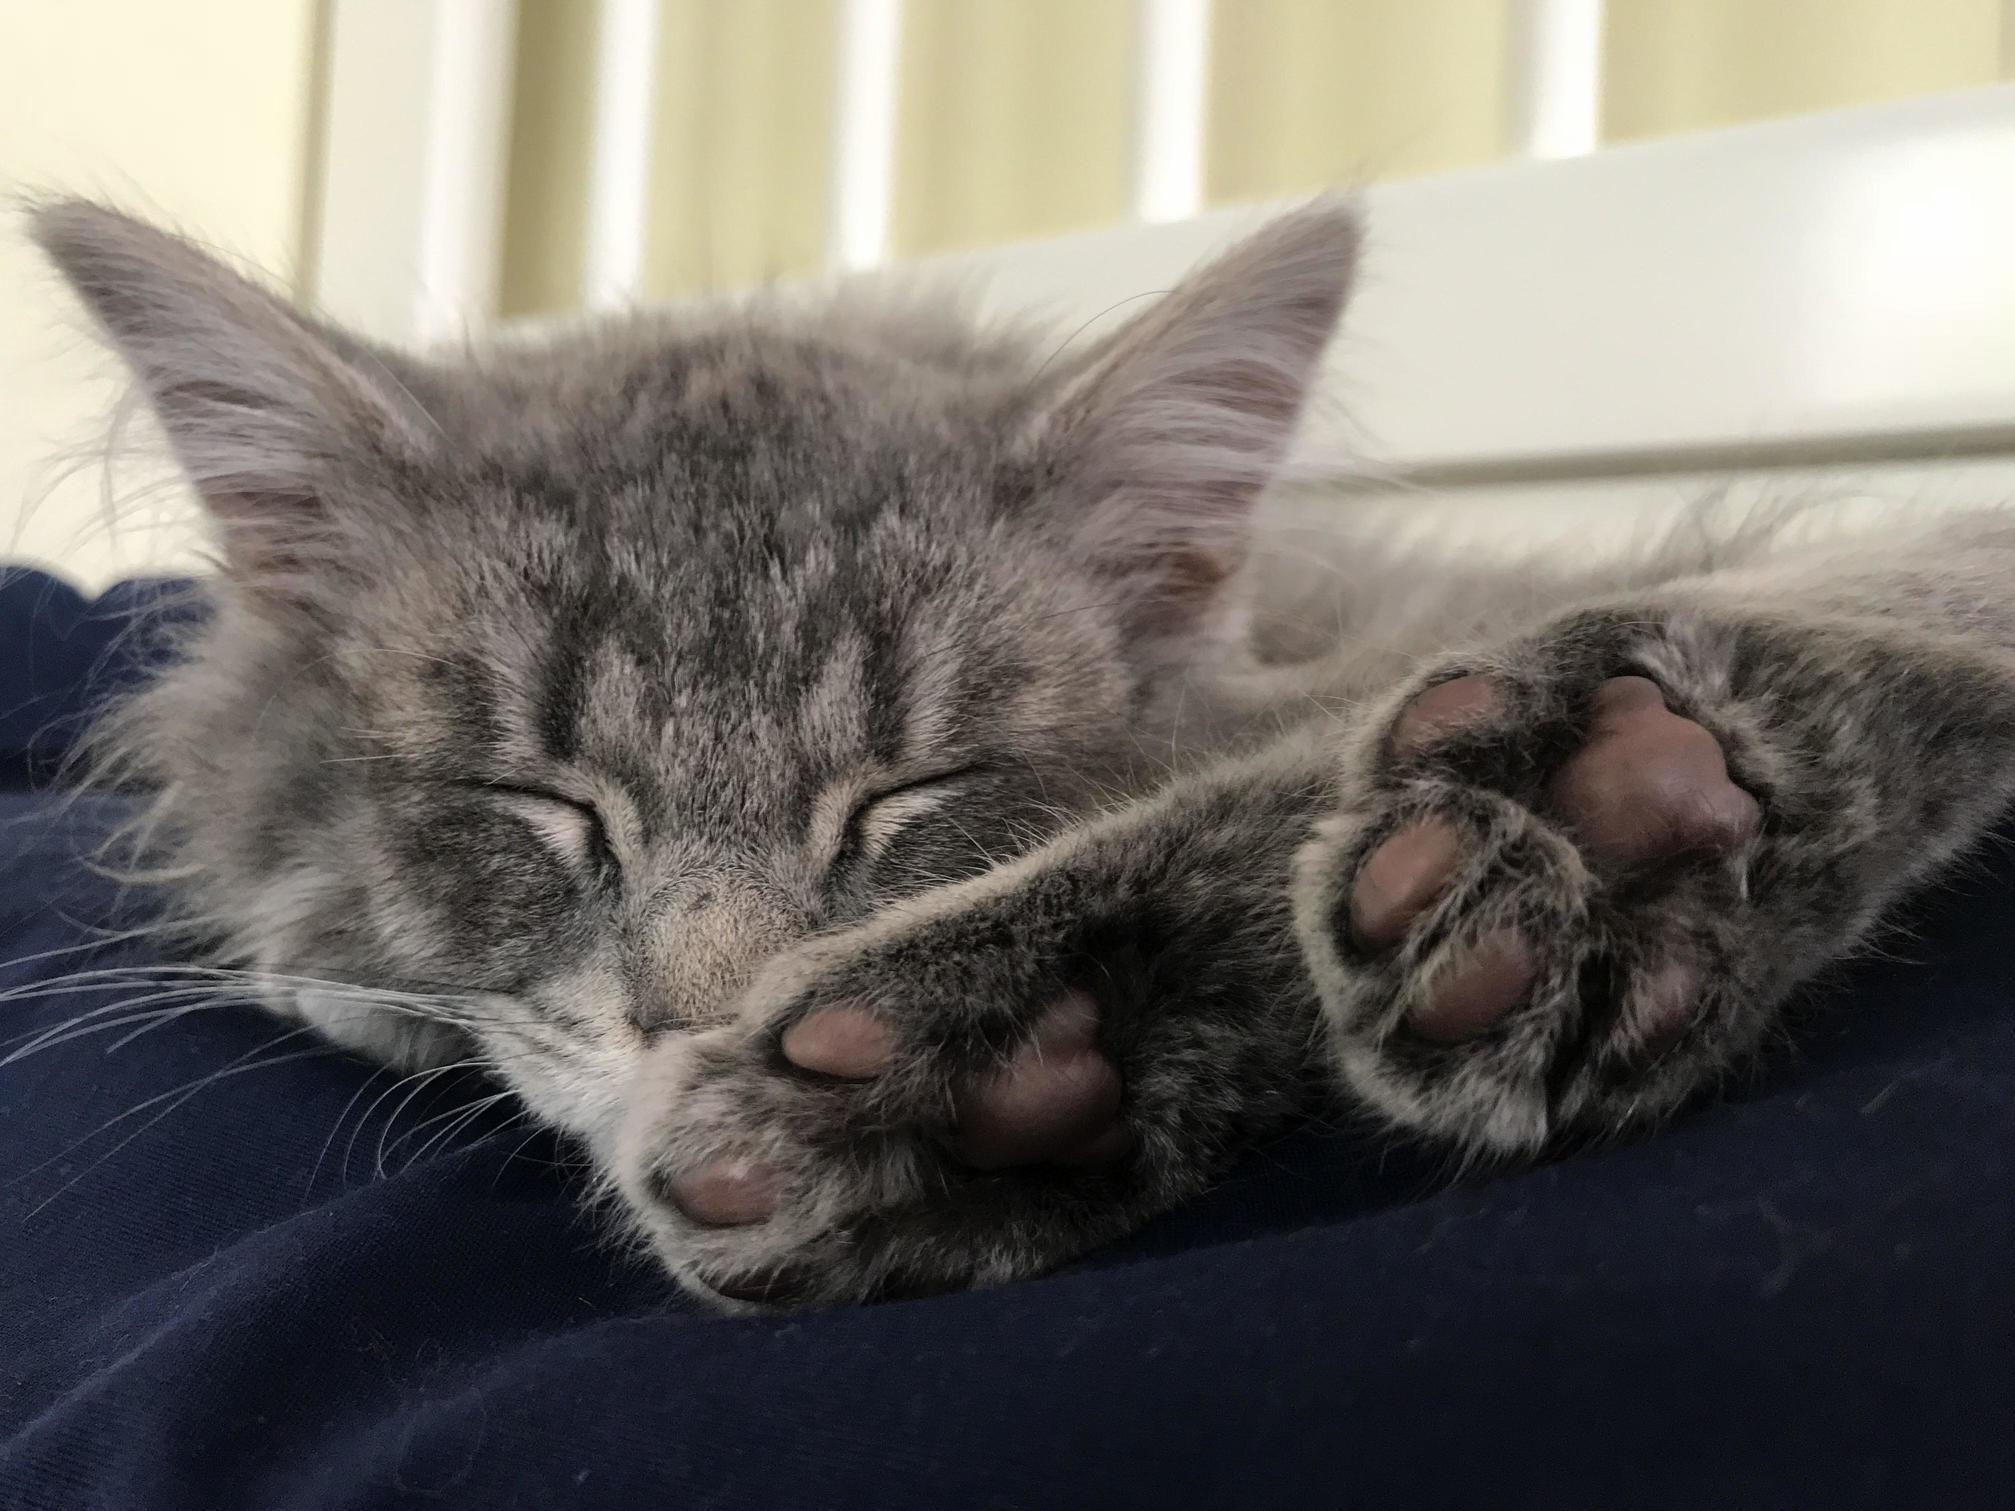 So in love with xenas 10 week old toe beans